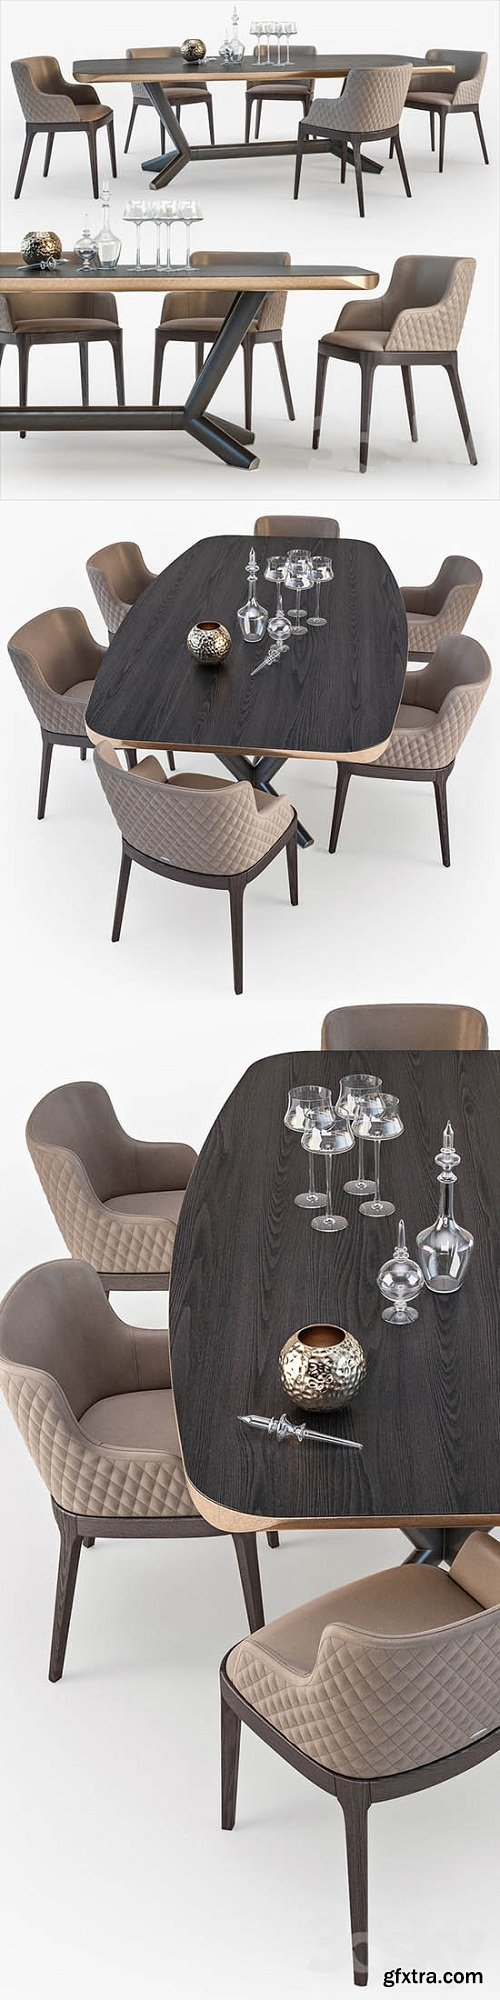 Cattelan Italia Planer table Magda armchair set 01